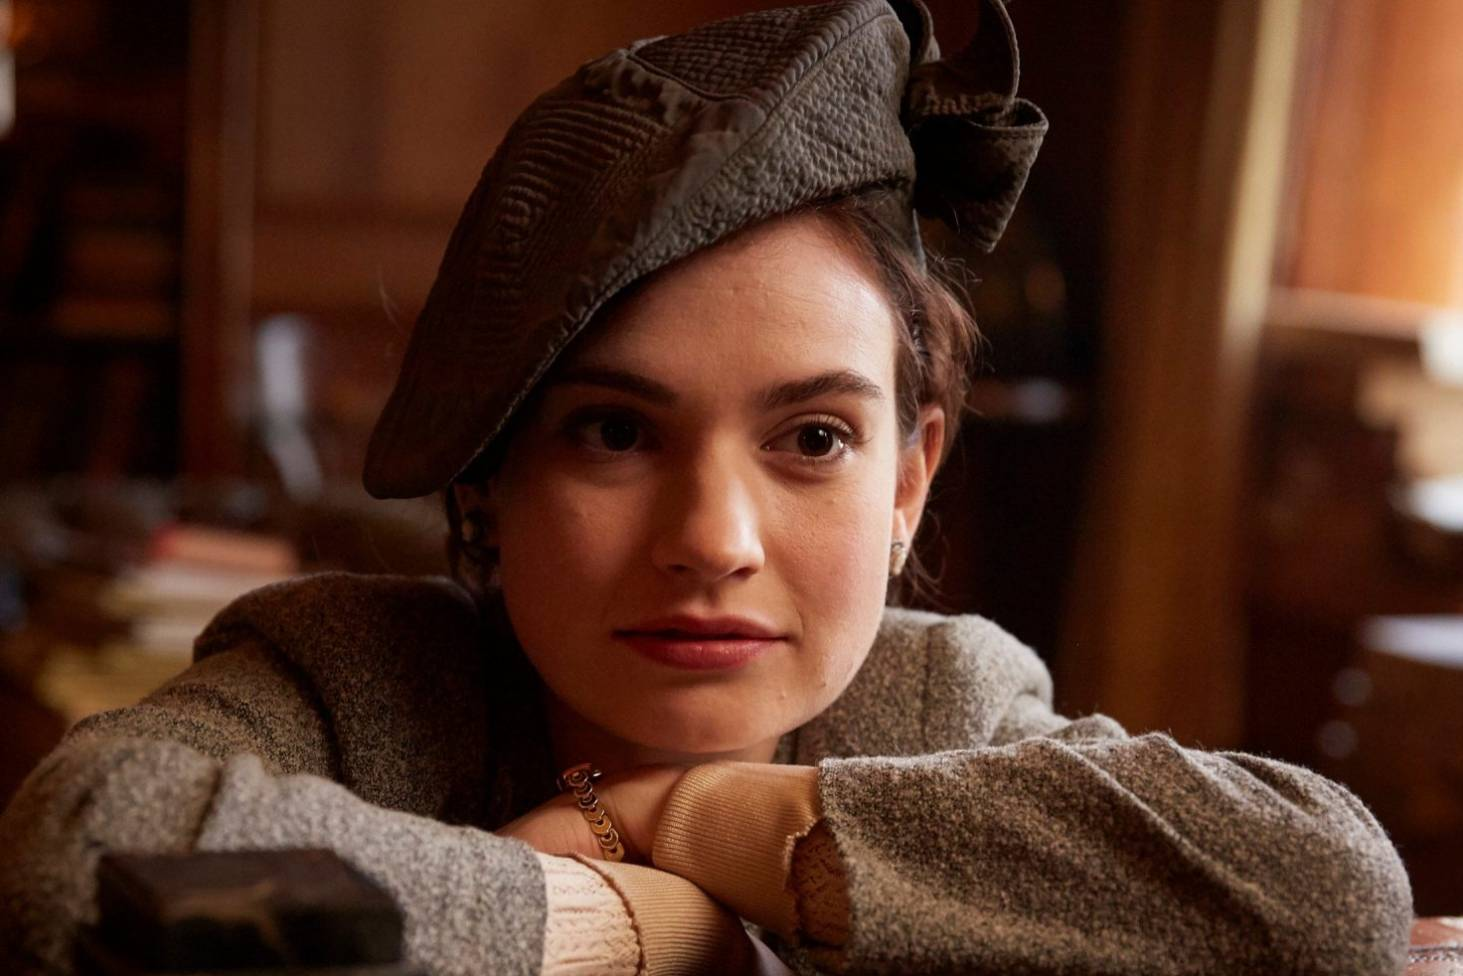 df634f79d The Guernsey Literary and Potato Peel Pie Society  Lily James ...